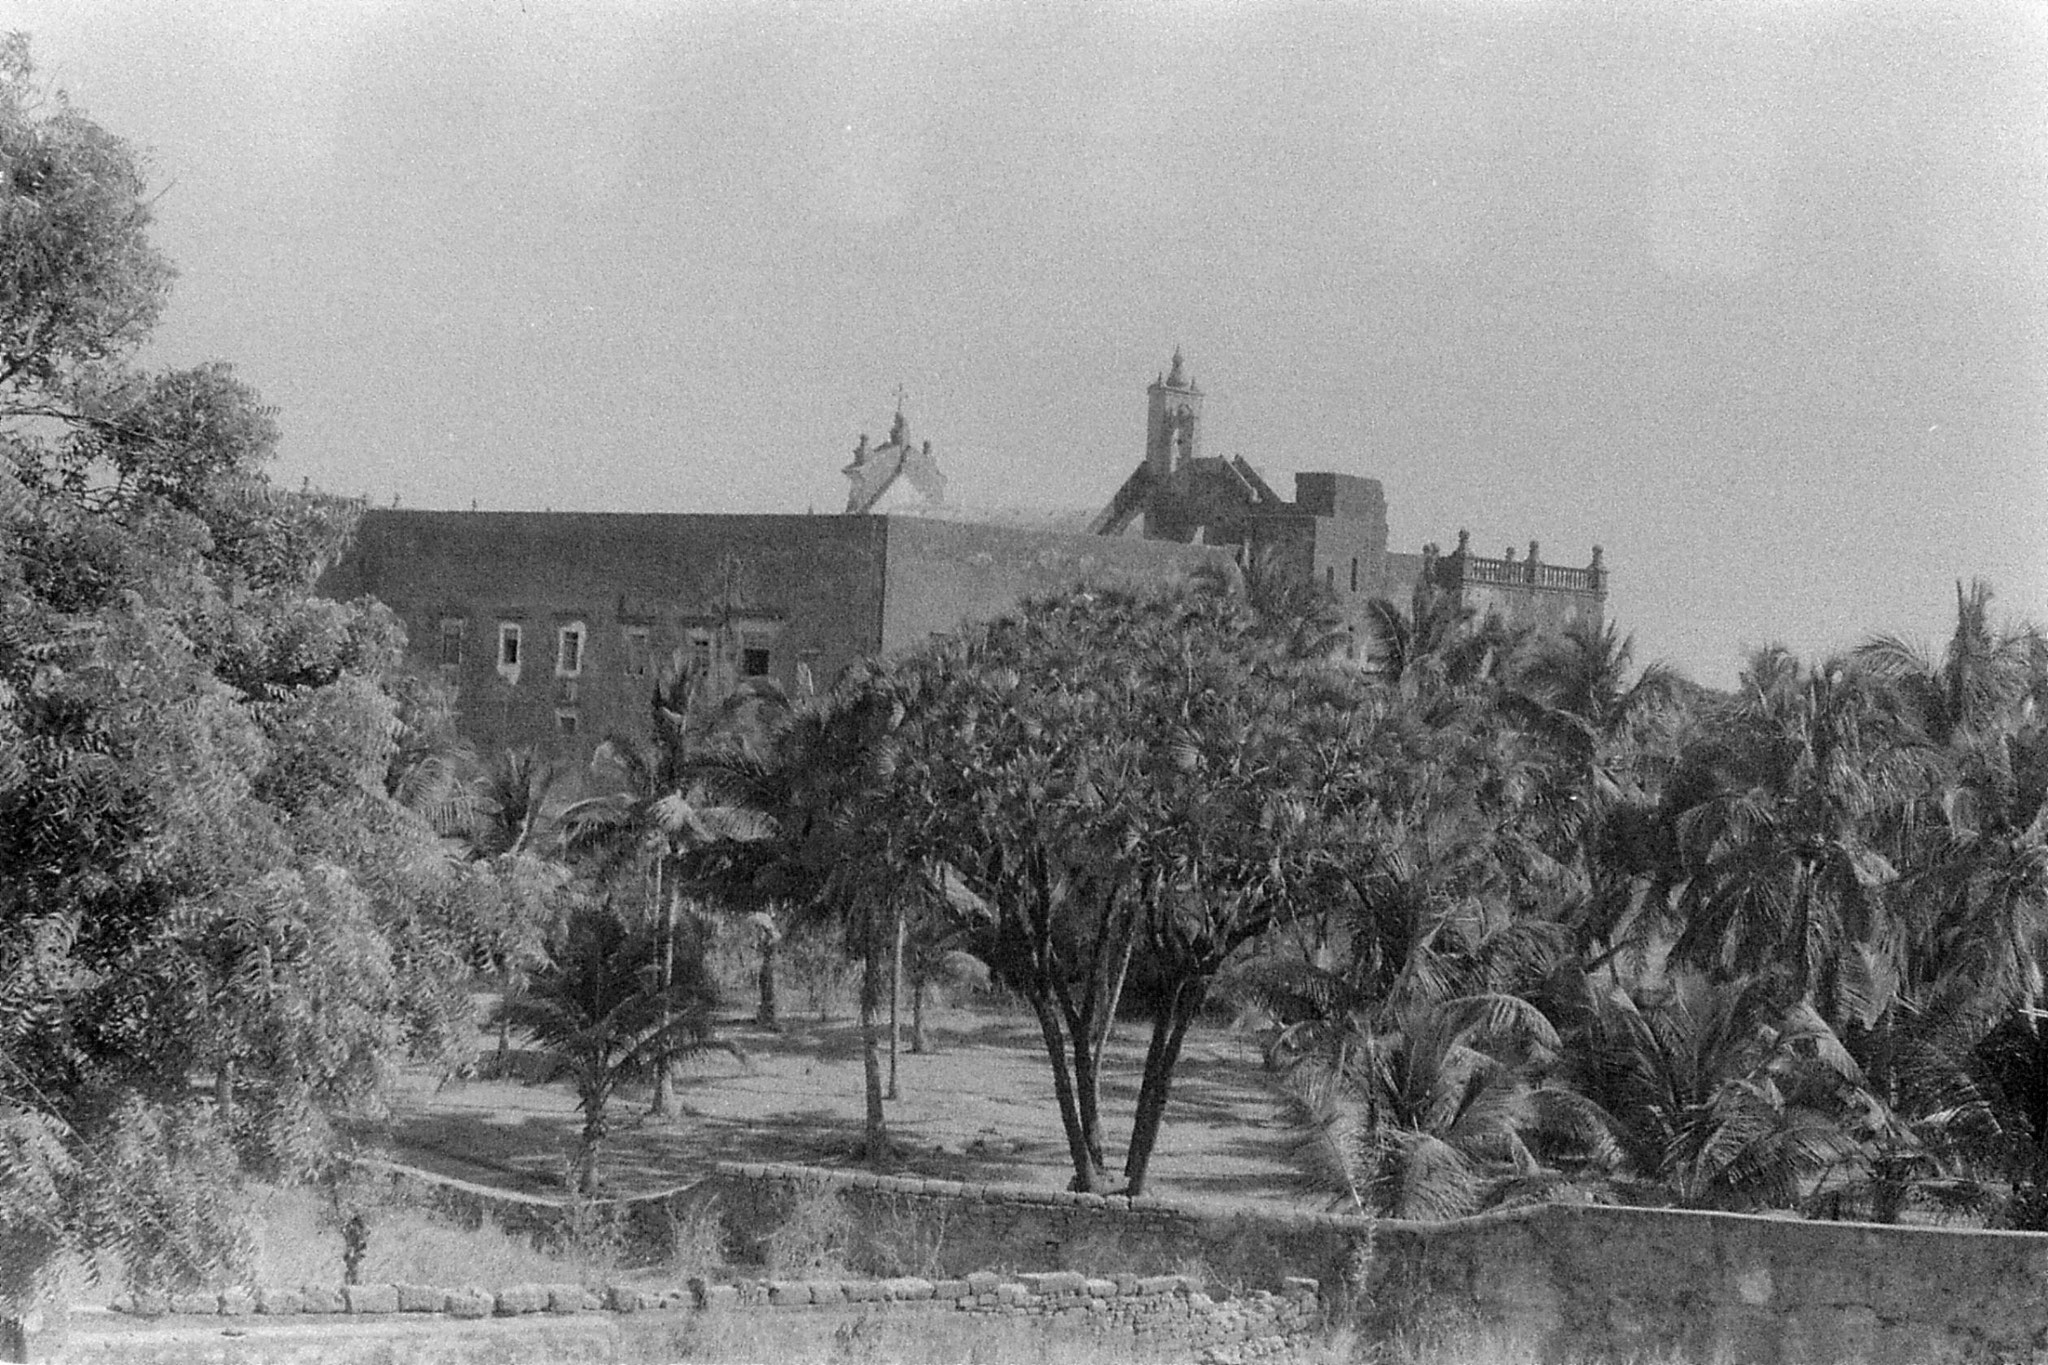 16/12/89: 11: Diu:  palm trees and St Peter's church